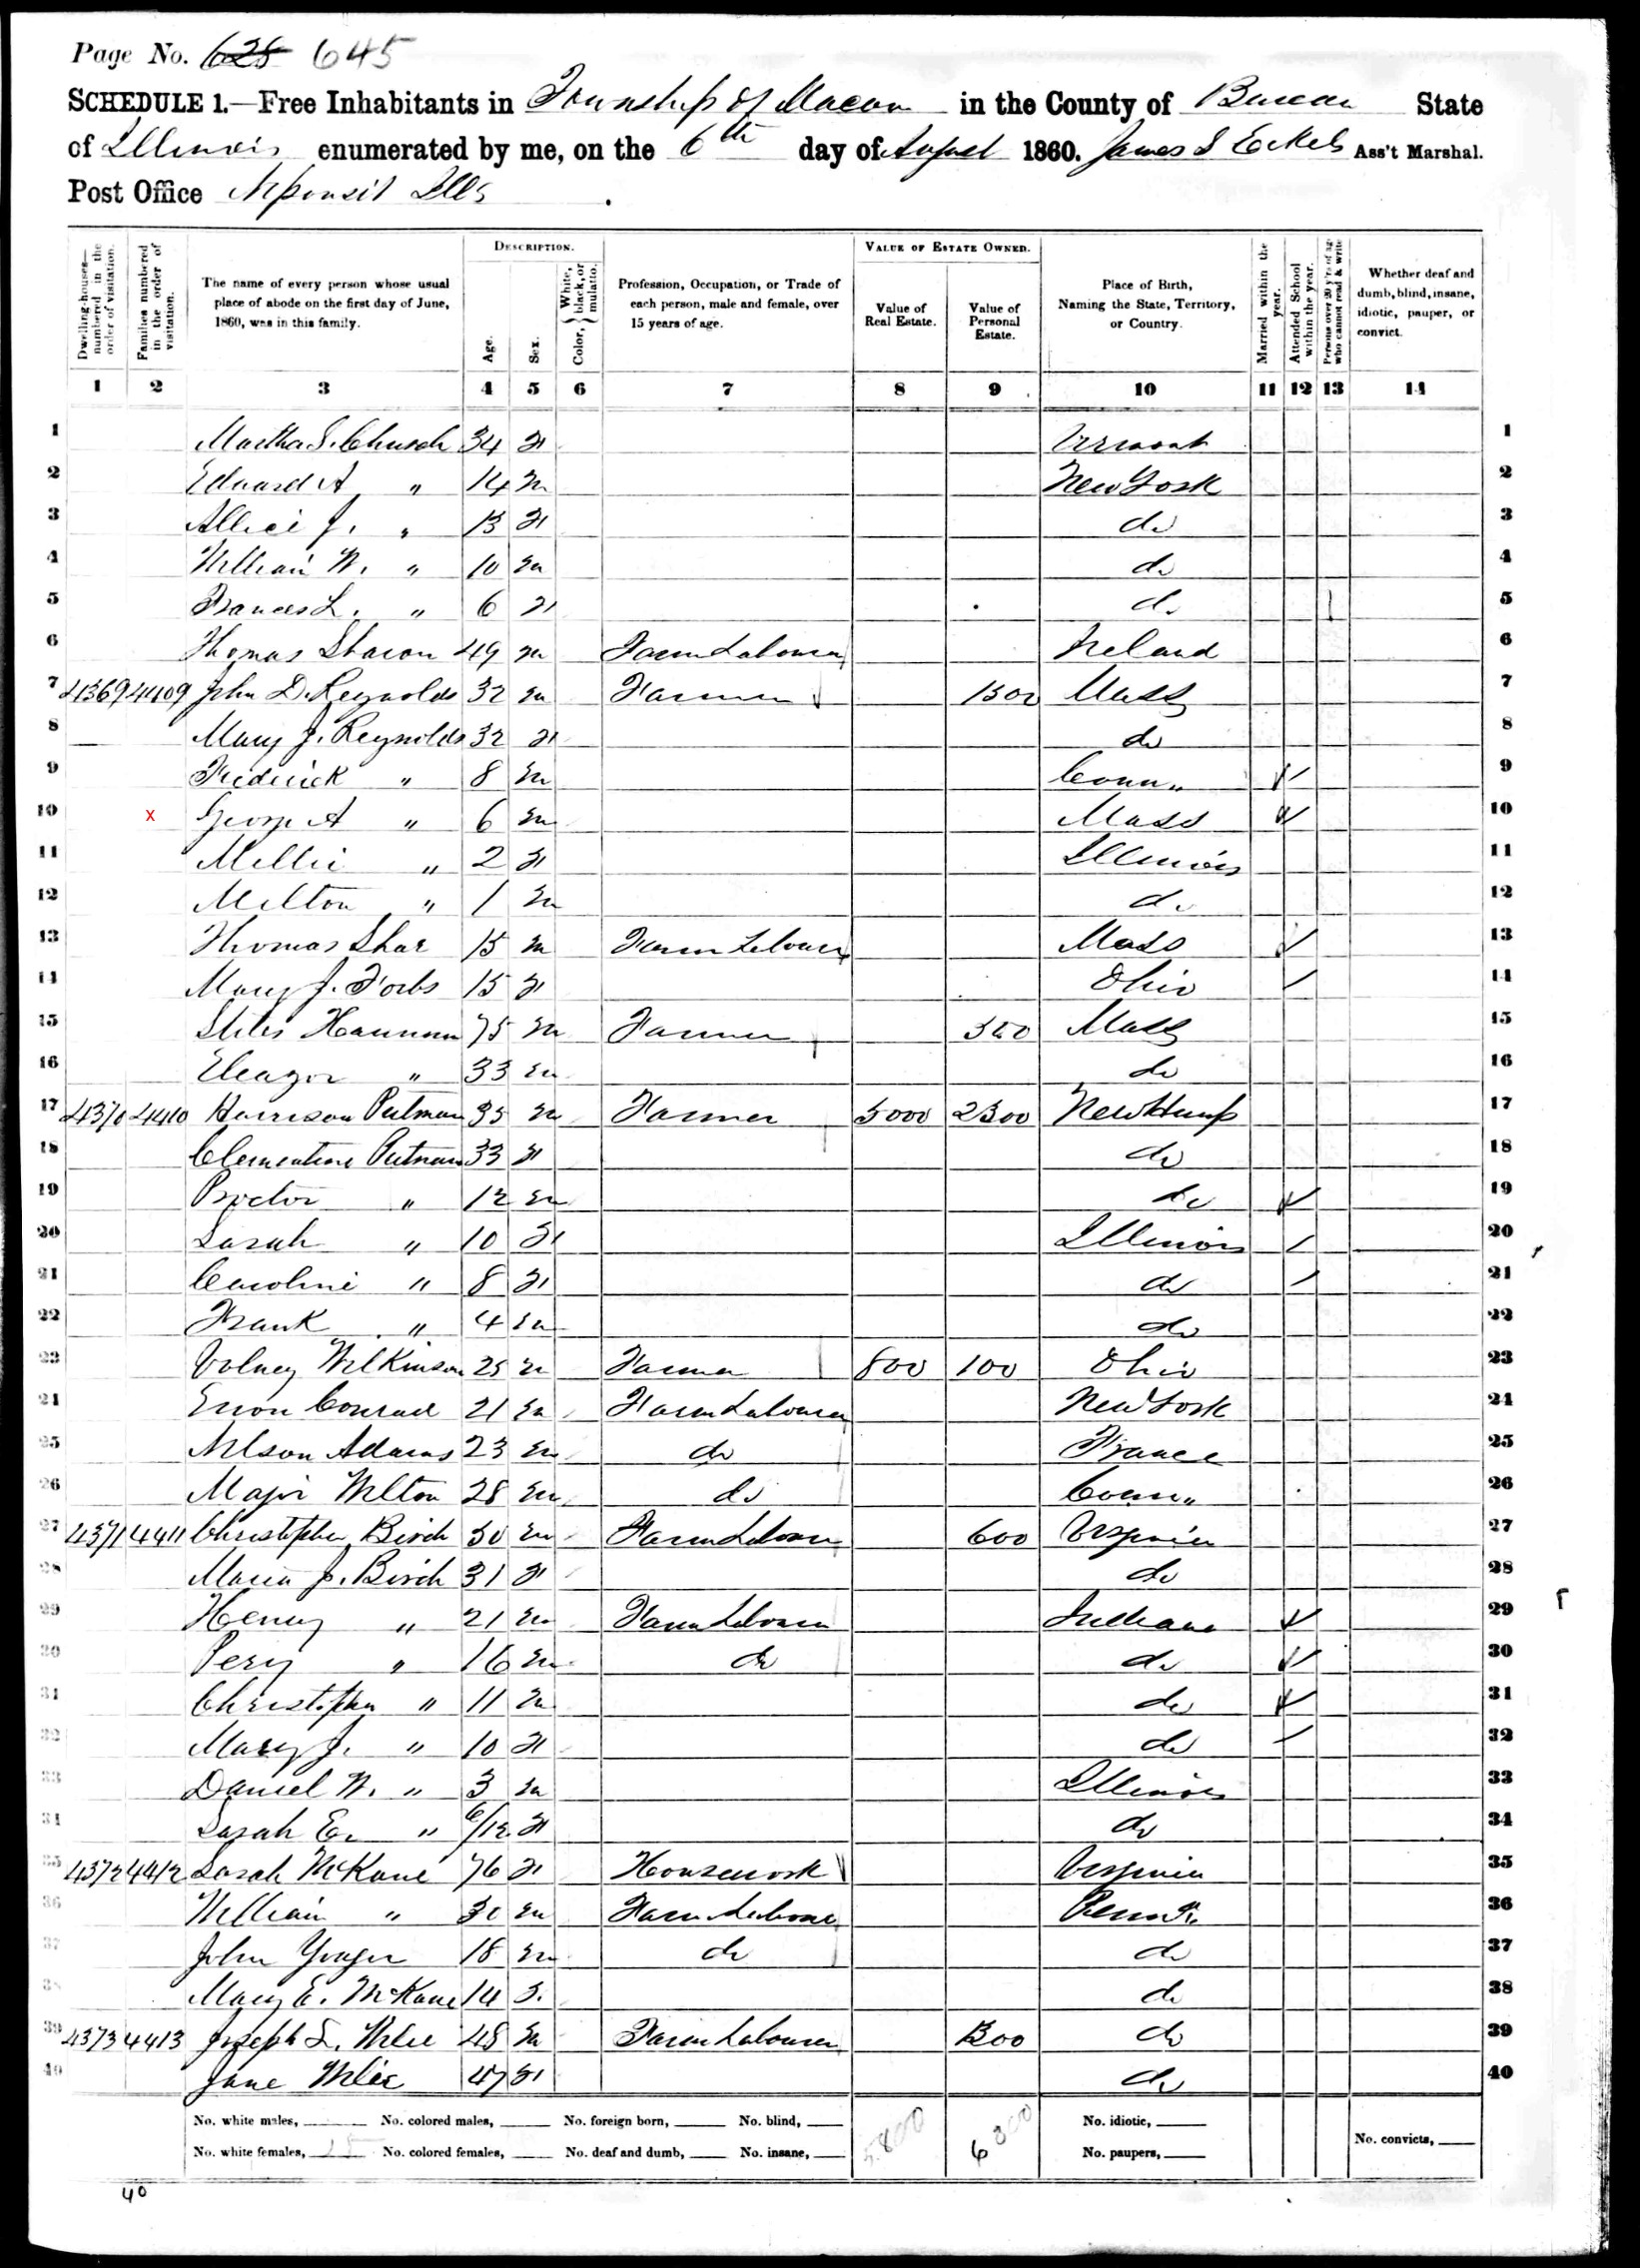 Illinois bureau county ohio - They Moved To Buda For Two Years And Then Purchased A 160 Acre Farm In Section 6 Of Indiantown Bureau County Illinois In 1862